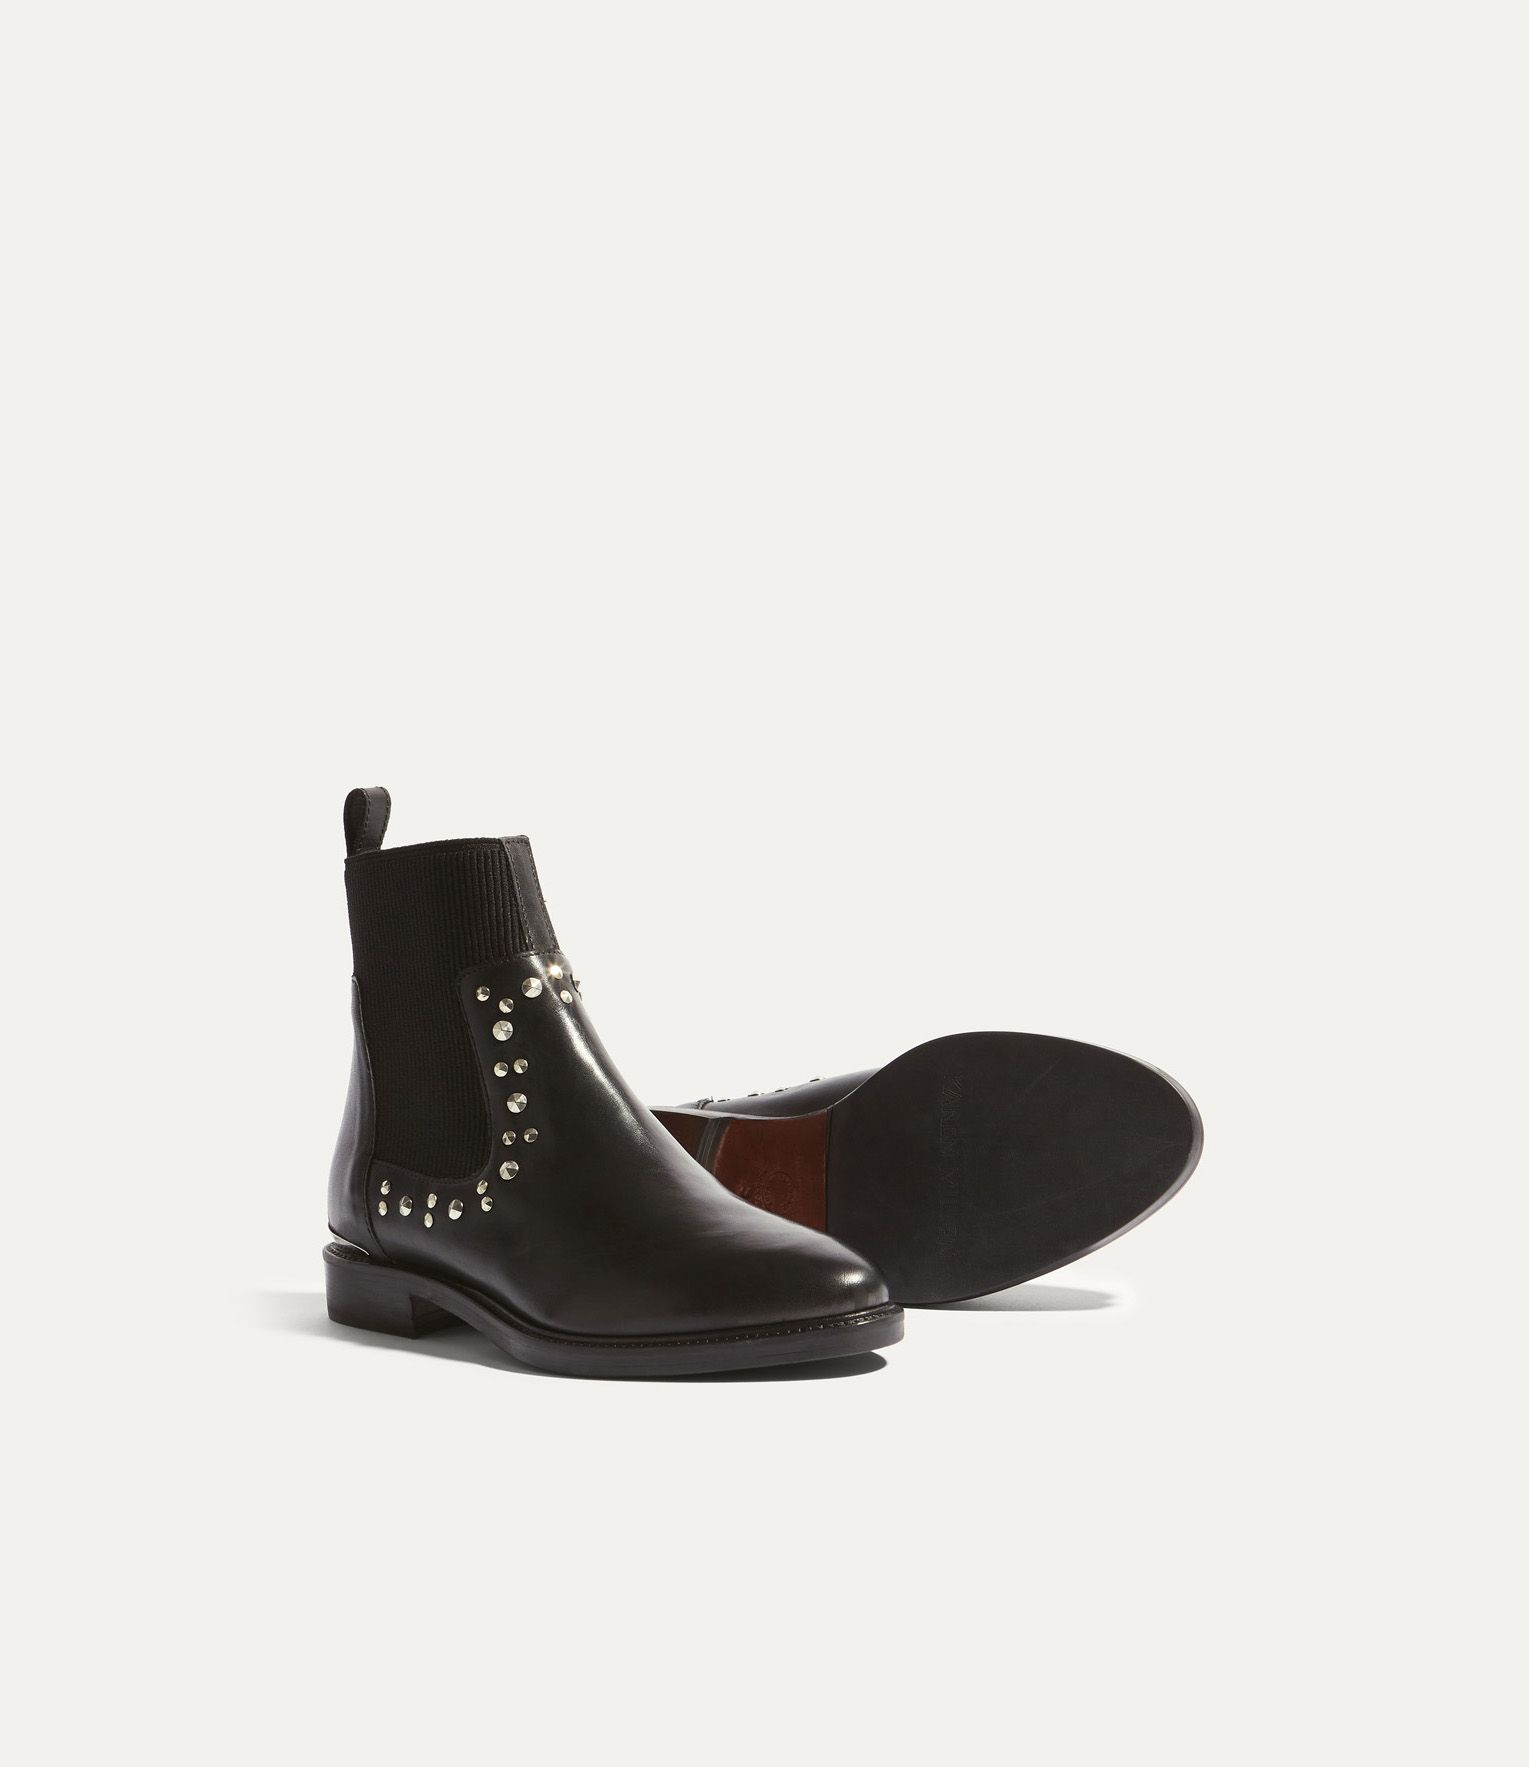 534d9ef1ade Karen Millen, STUDDED LEATHER CHELSEA BOOTS Black | fashion style ...